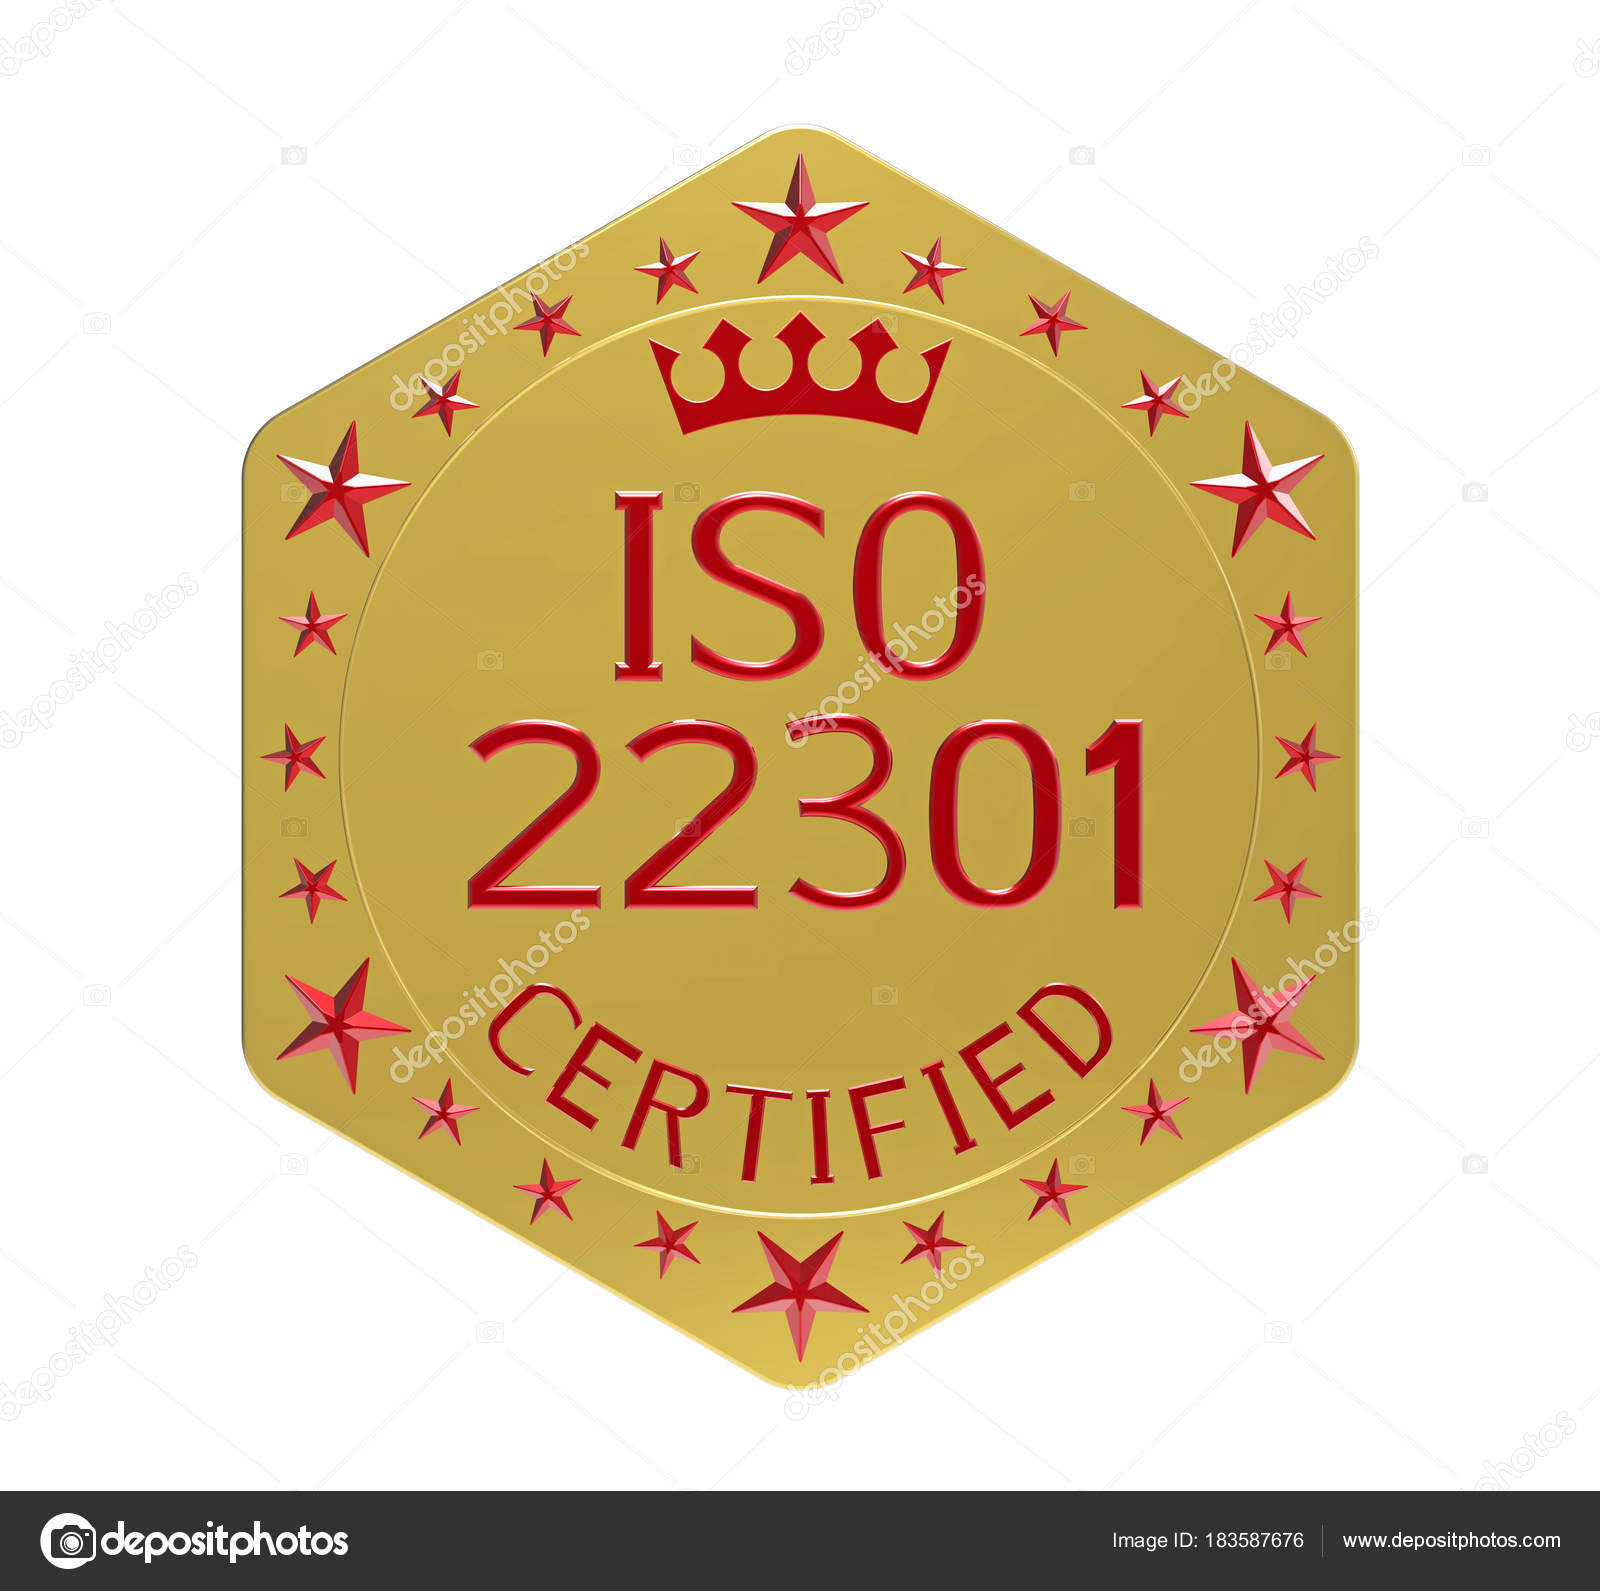 Iso 22301 Standard Stock Photo C Boris15 183587676